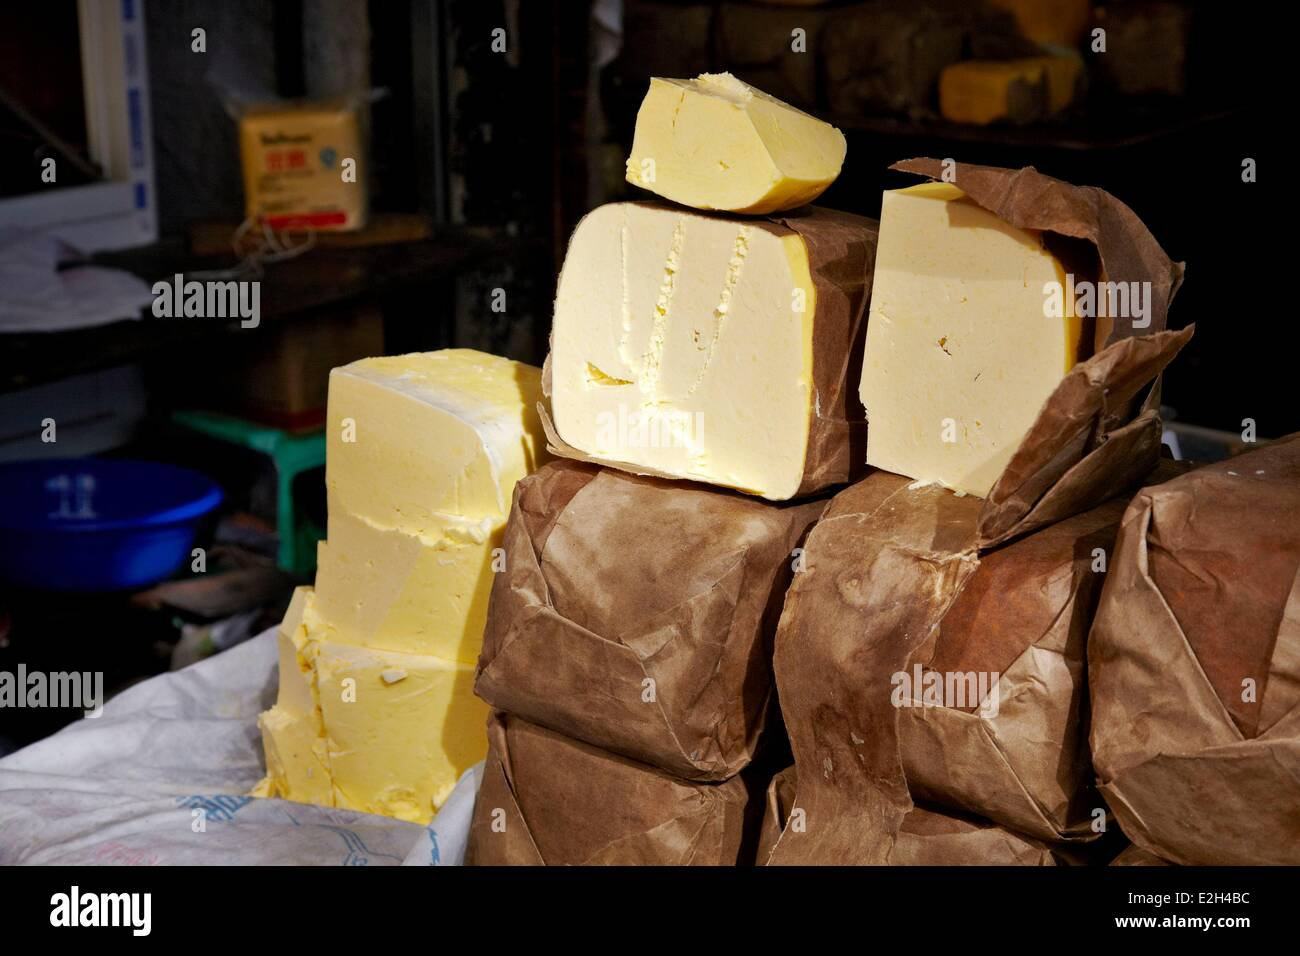 China Tibet Lhassa food market of Barkor with butter - Stock Image